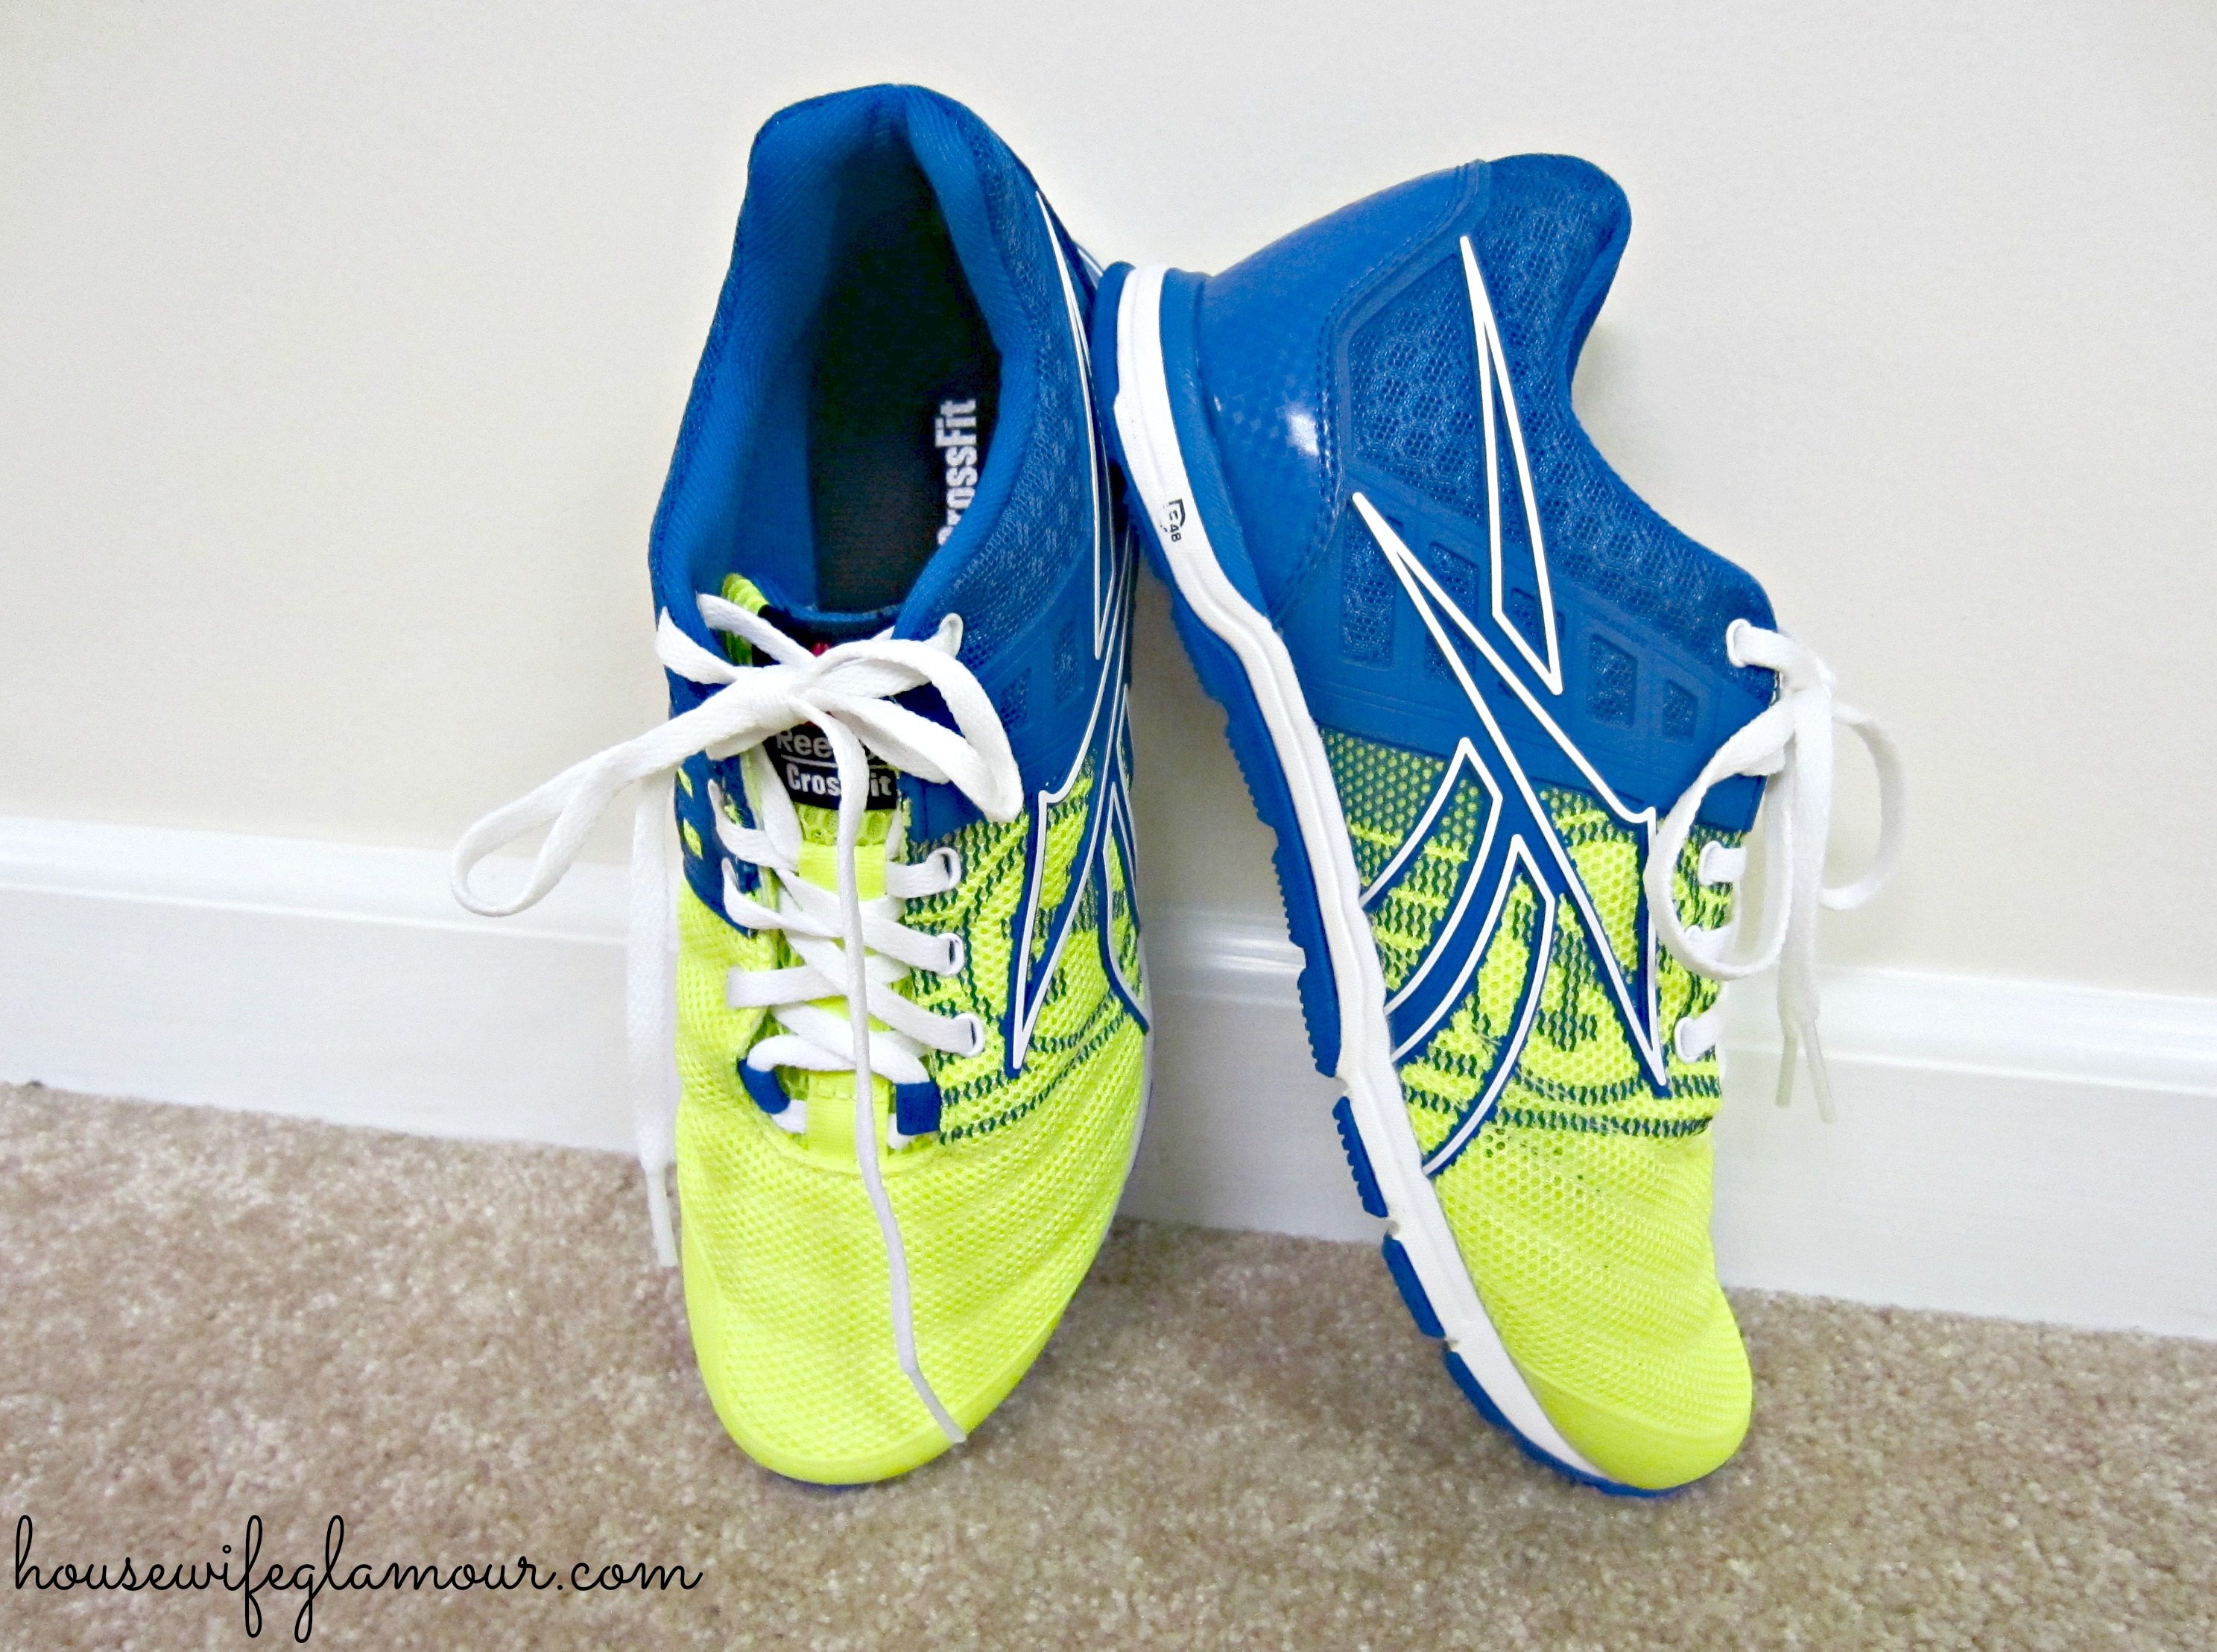 Reebok CrossFit Nano Speed Sneakers